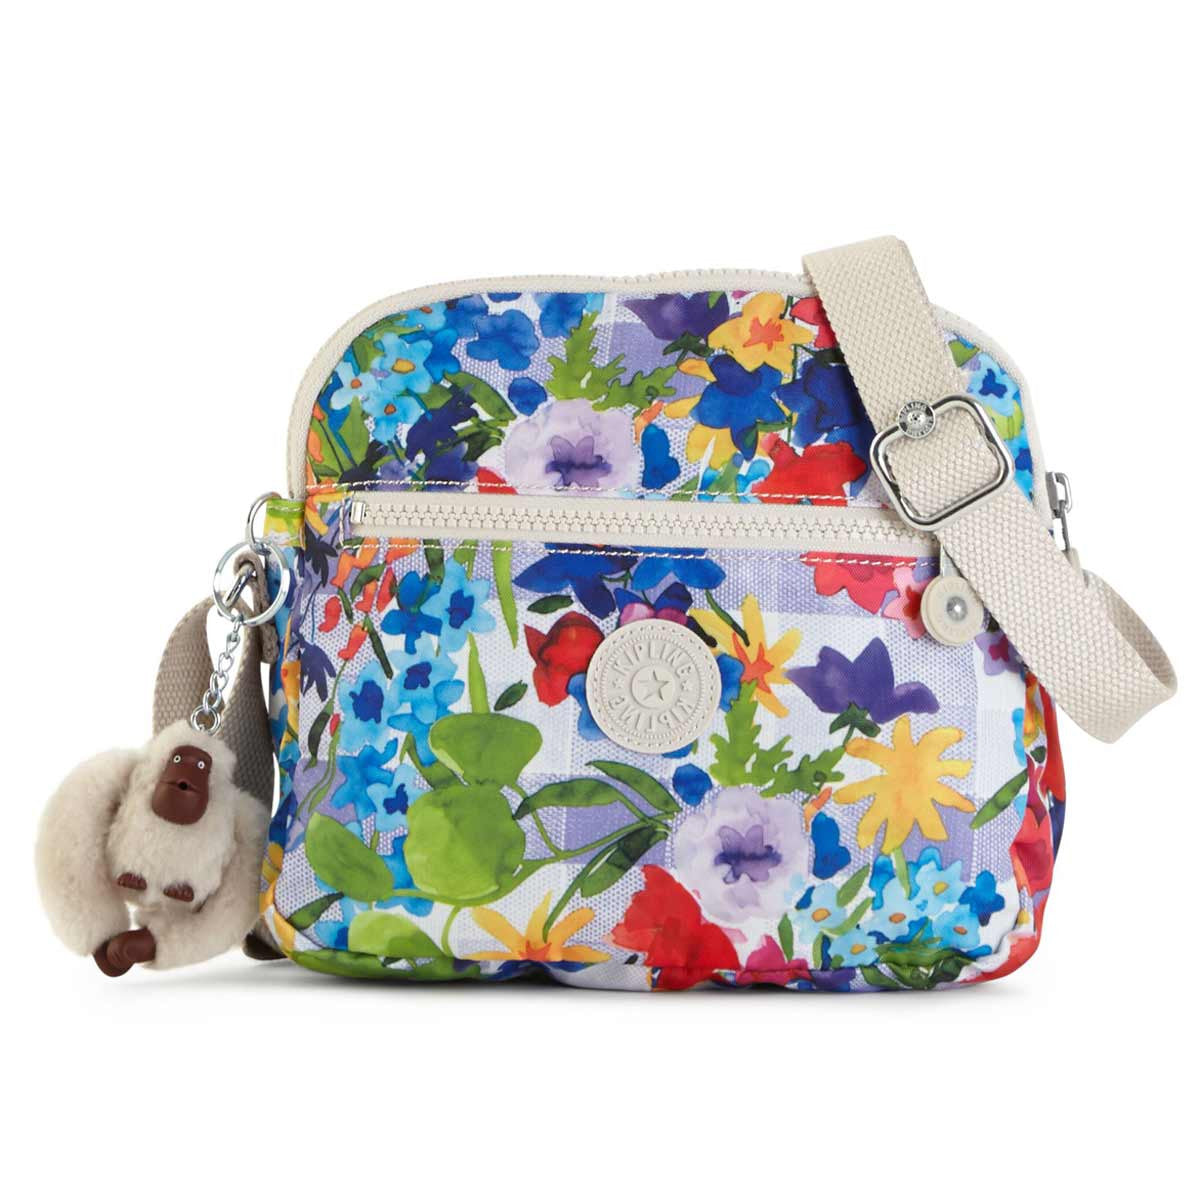 Kipling HB6468-943 Women's Keefe Picnic in the Park Printed Polyester Crossbody Handbag